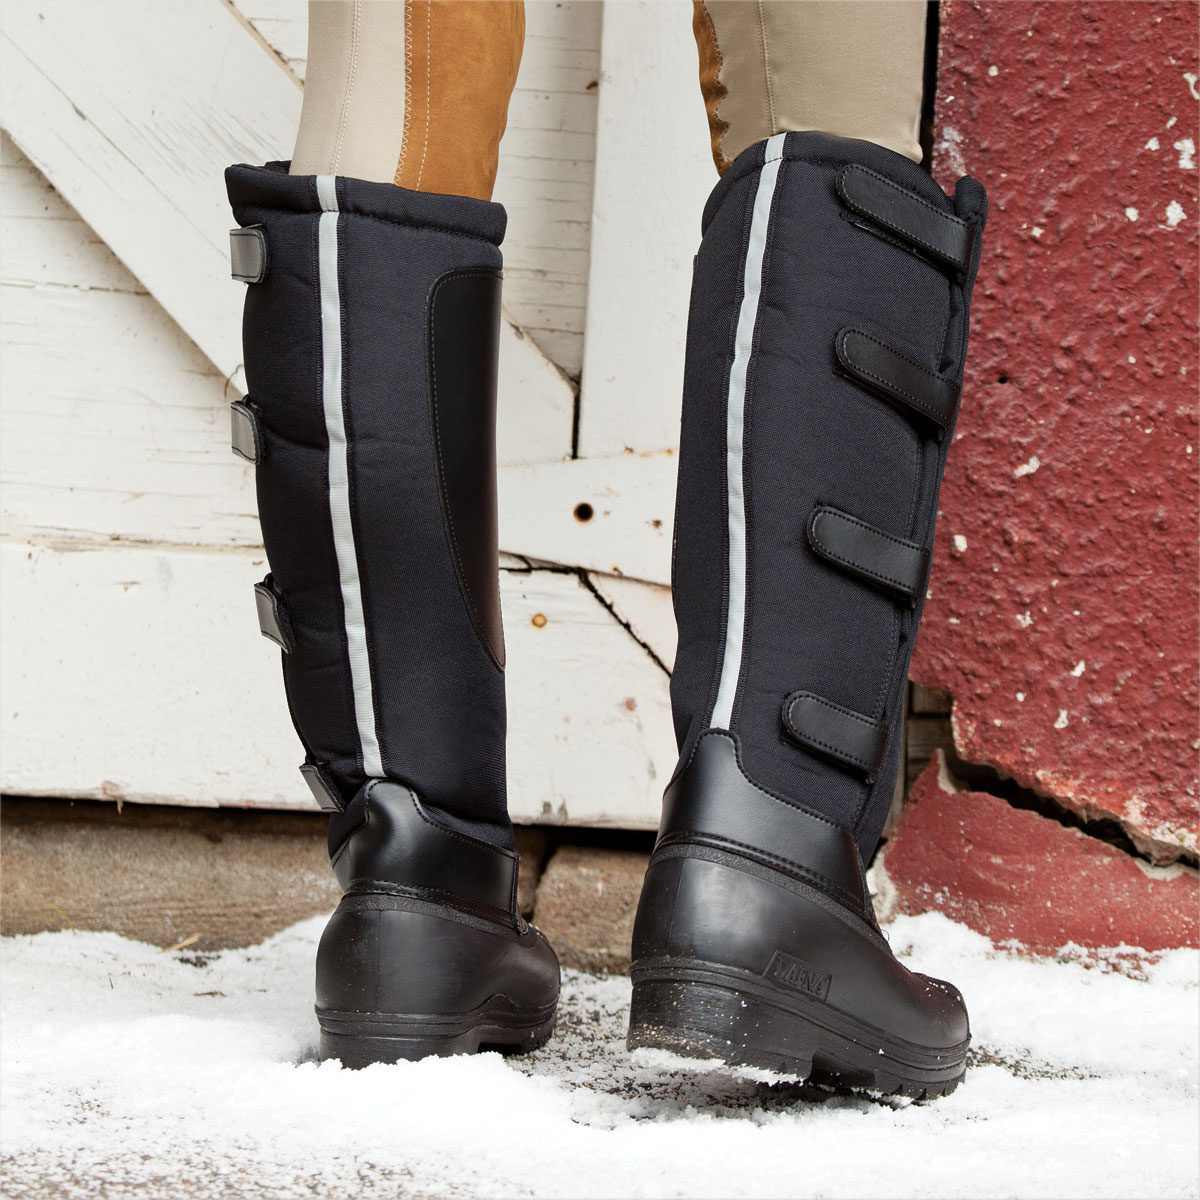 fb7e0d6caf Ovation® Blizzard Winter Boots